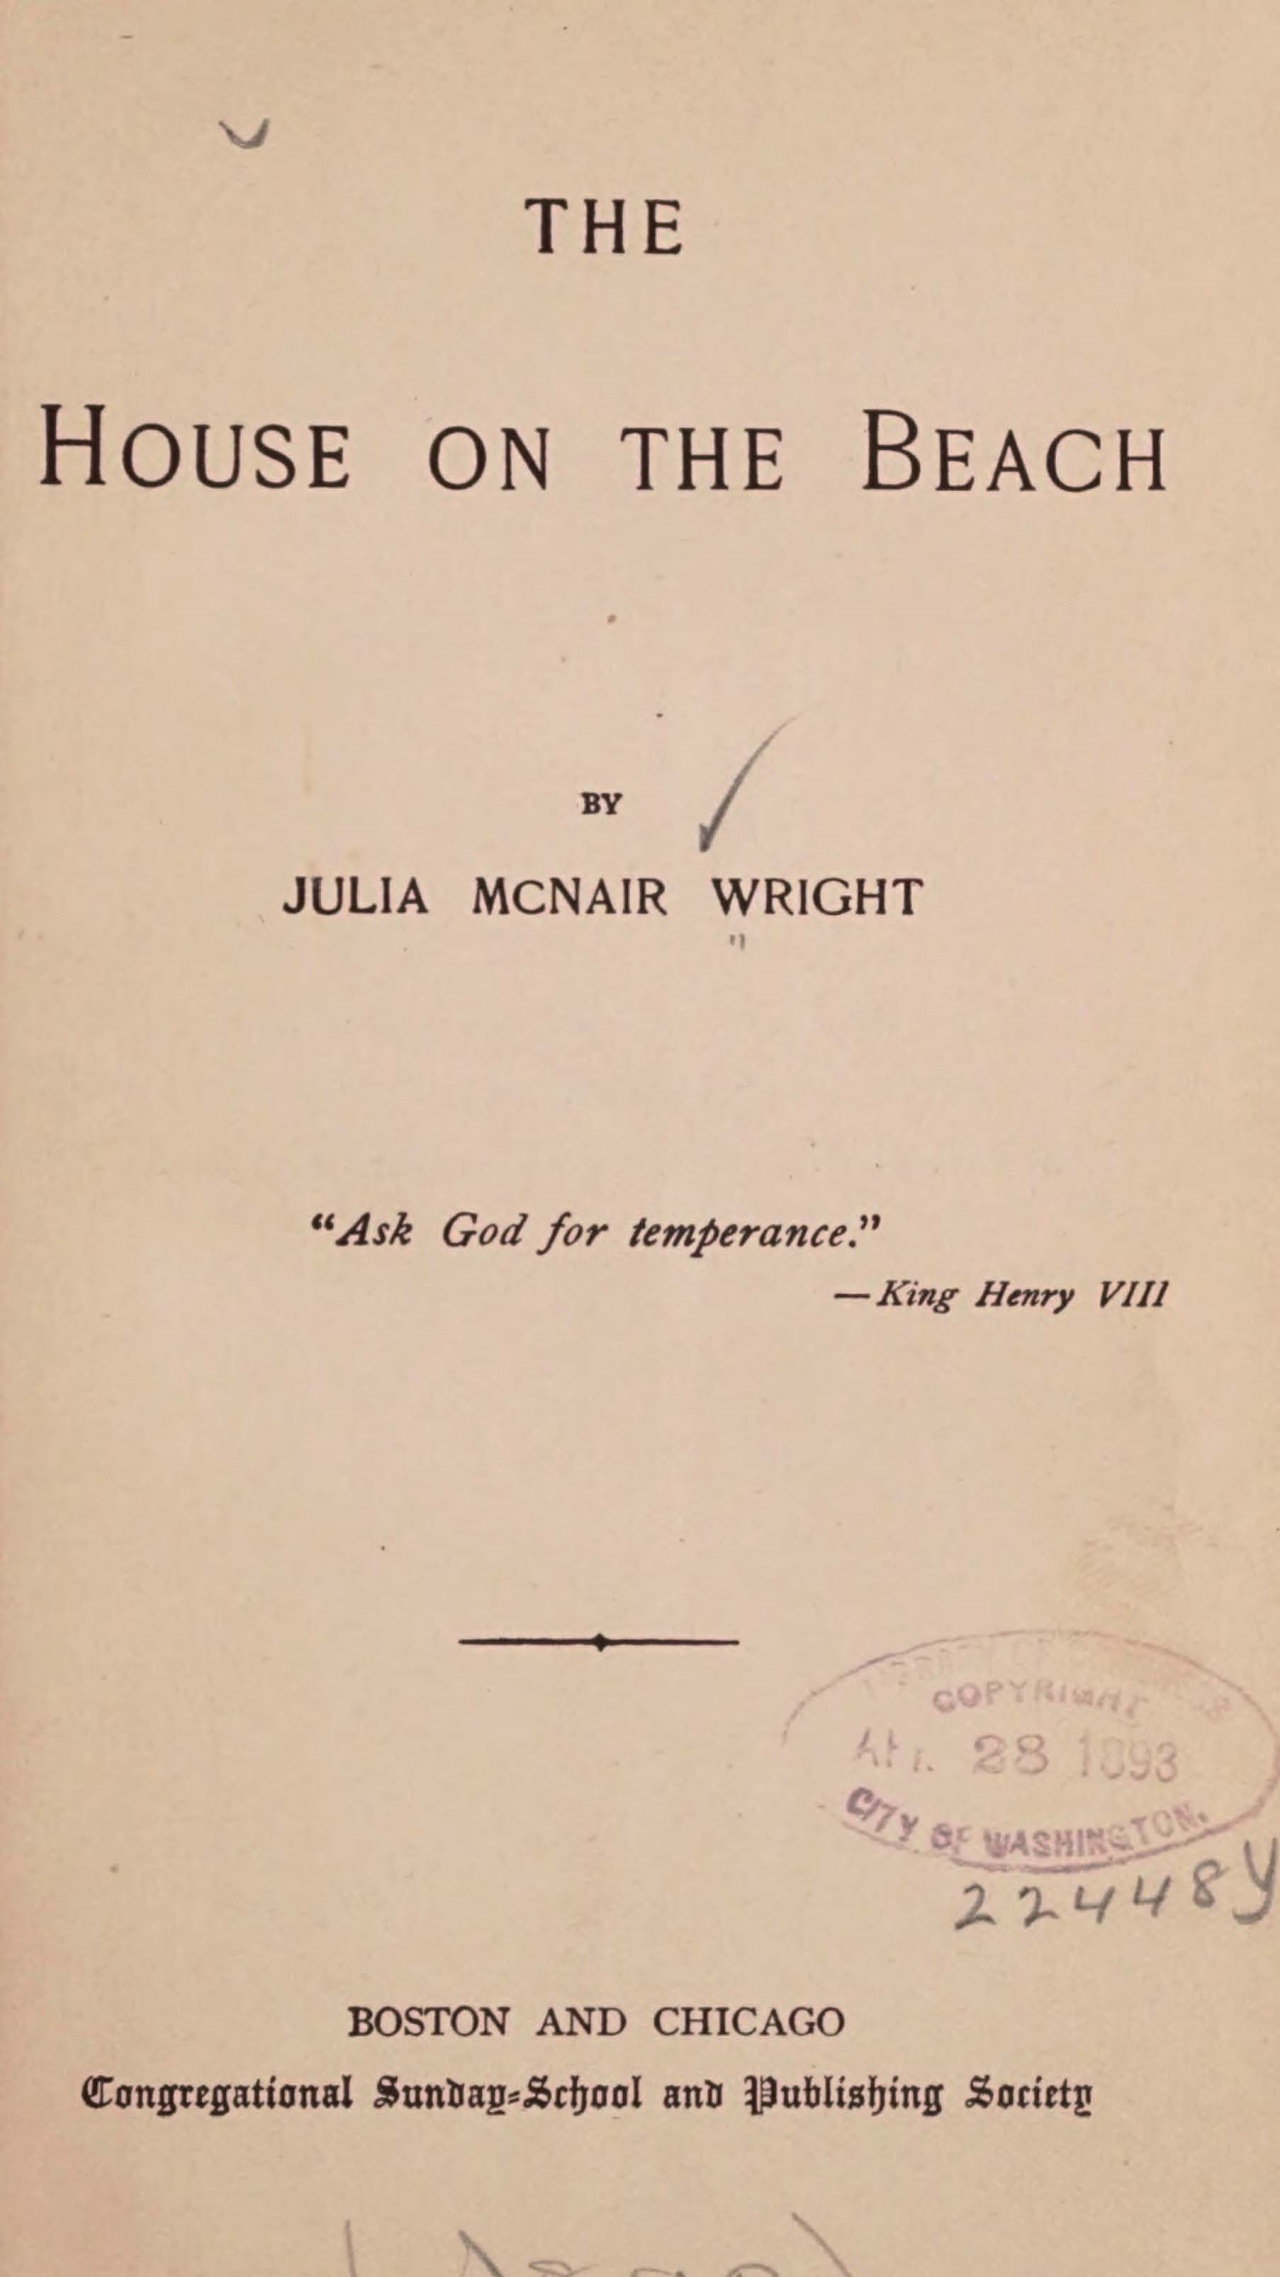 Wright, Julia McNair, The House on the Beach Title Page.jpg